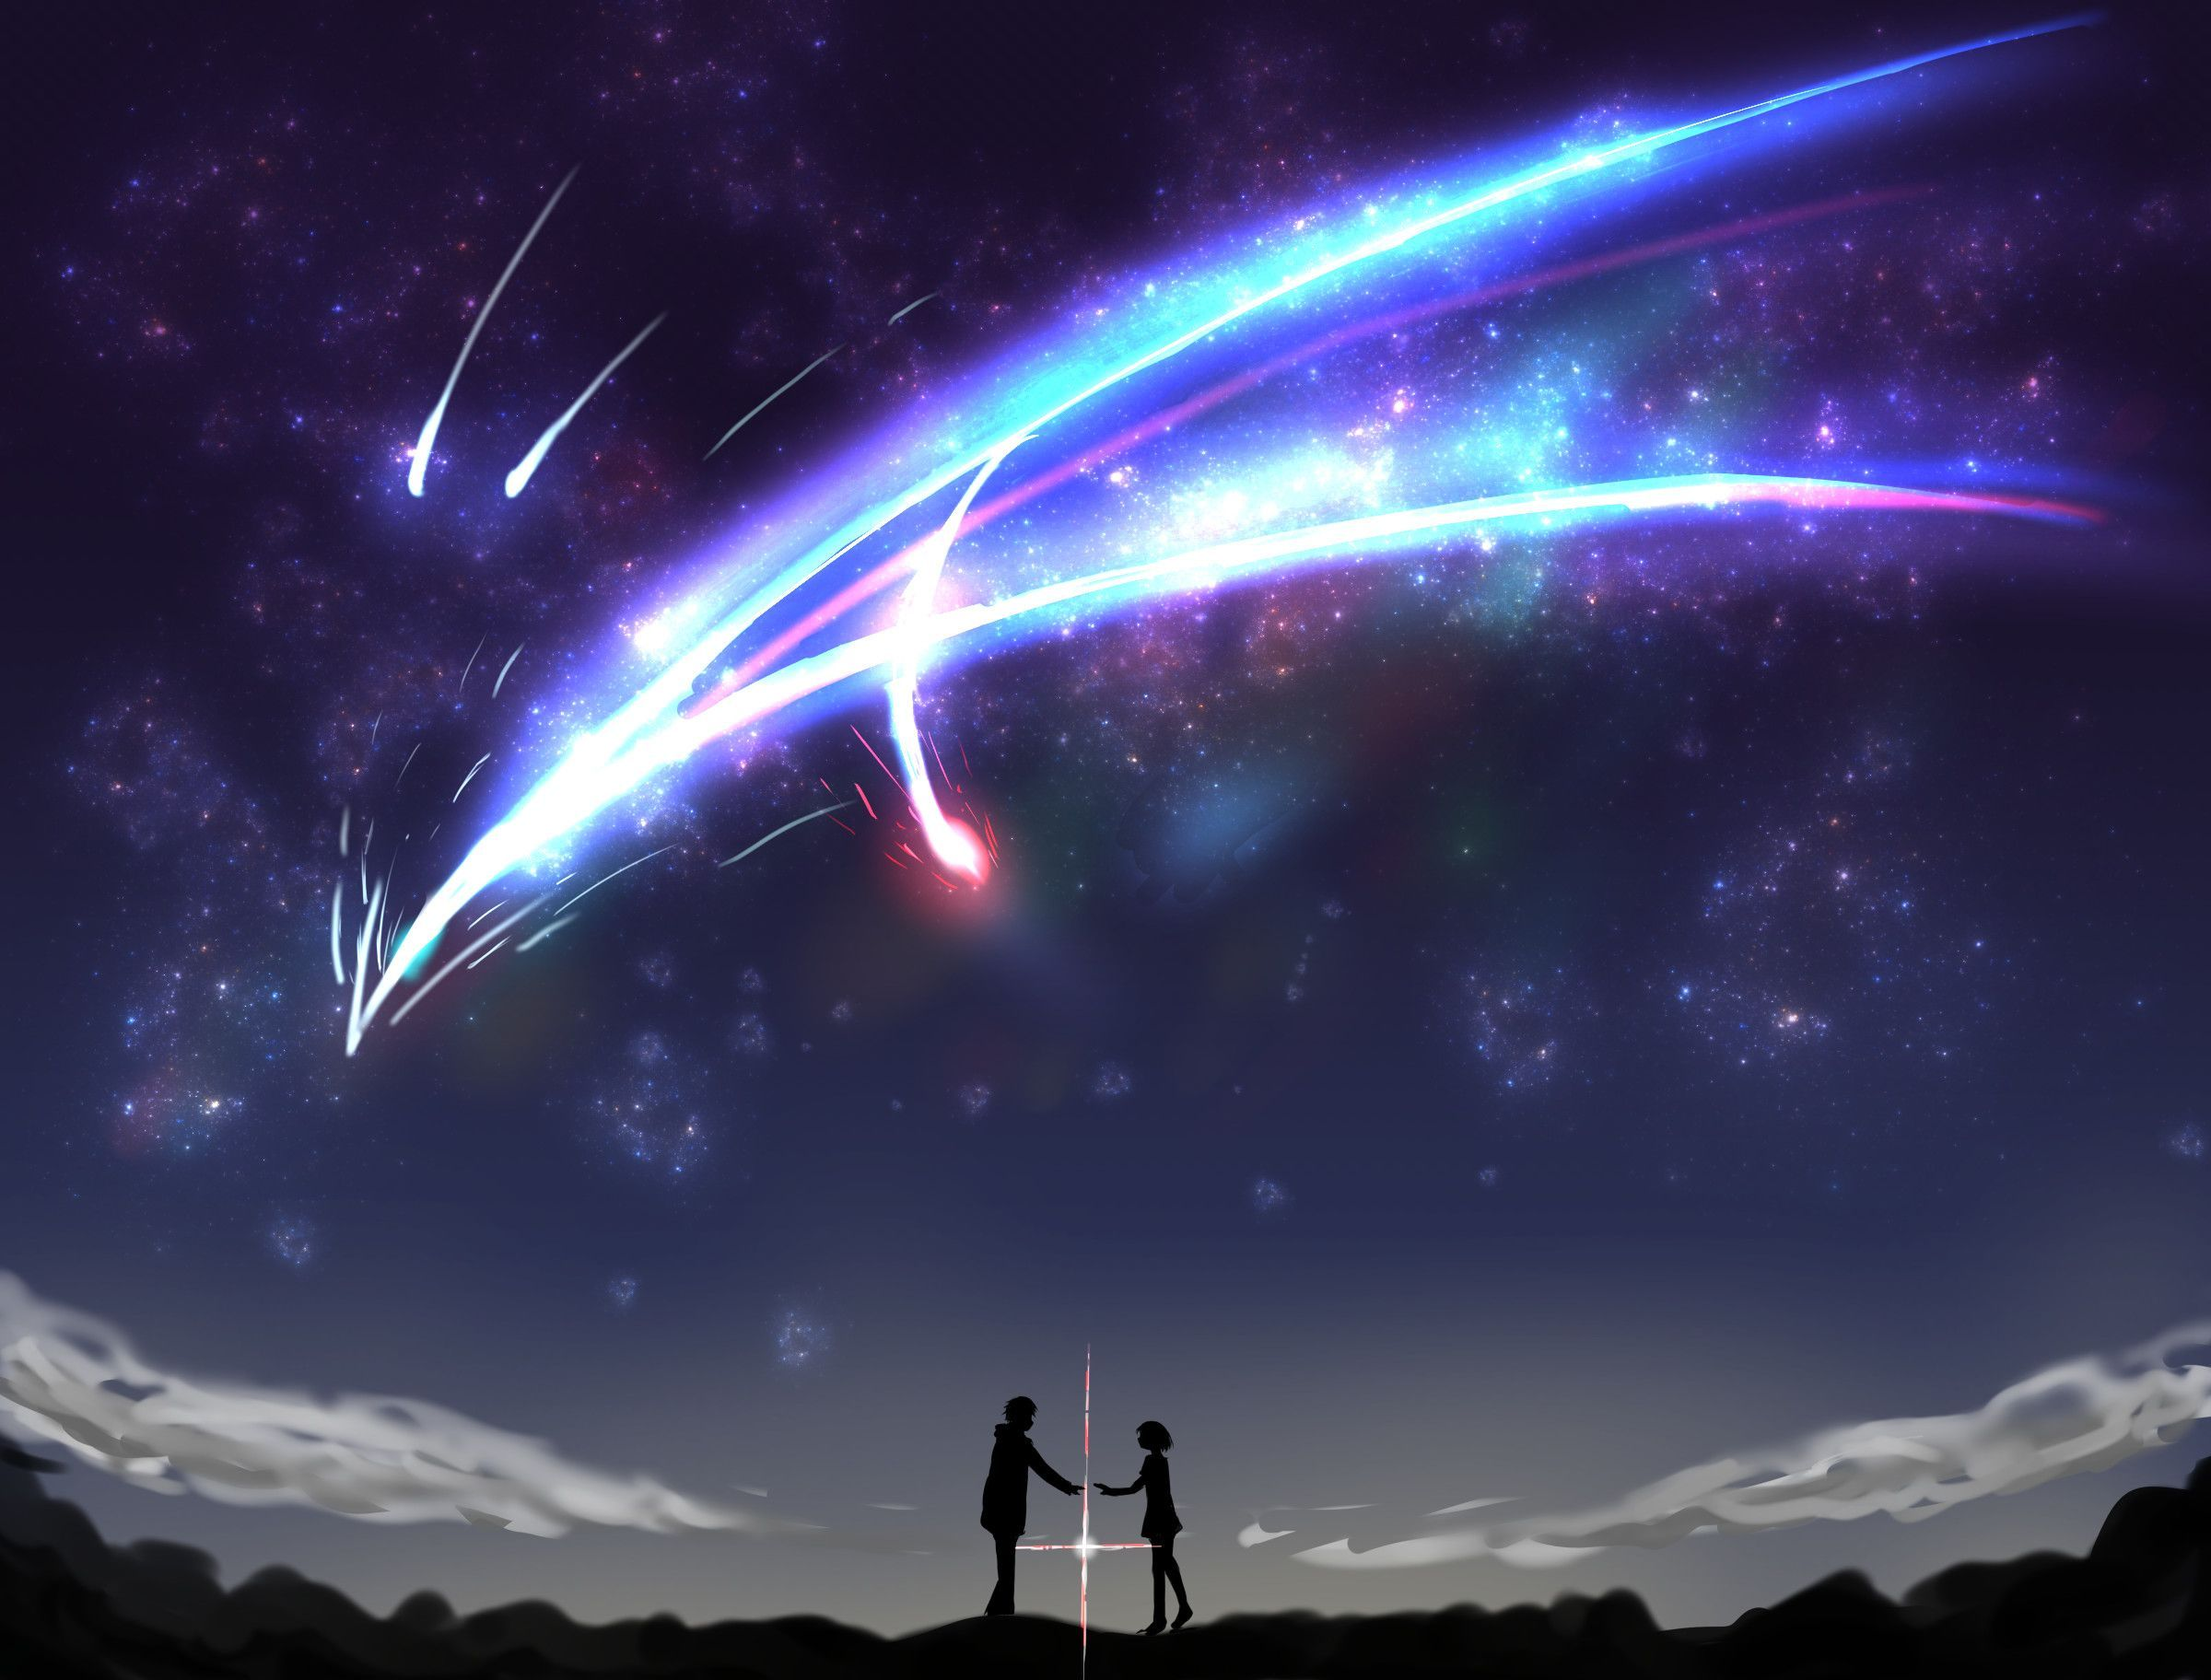 Kimi No Na Wa Live Wallpapers Top Free Kimi No Na Wa Live Backgrounds Wallpaperaccess